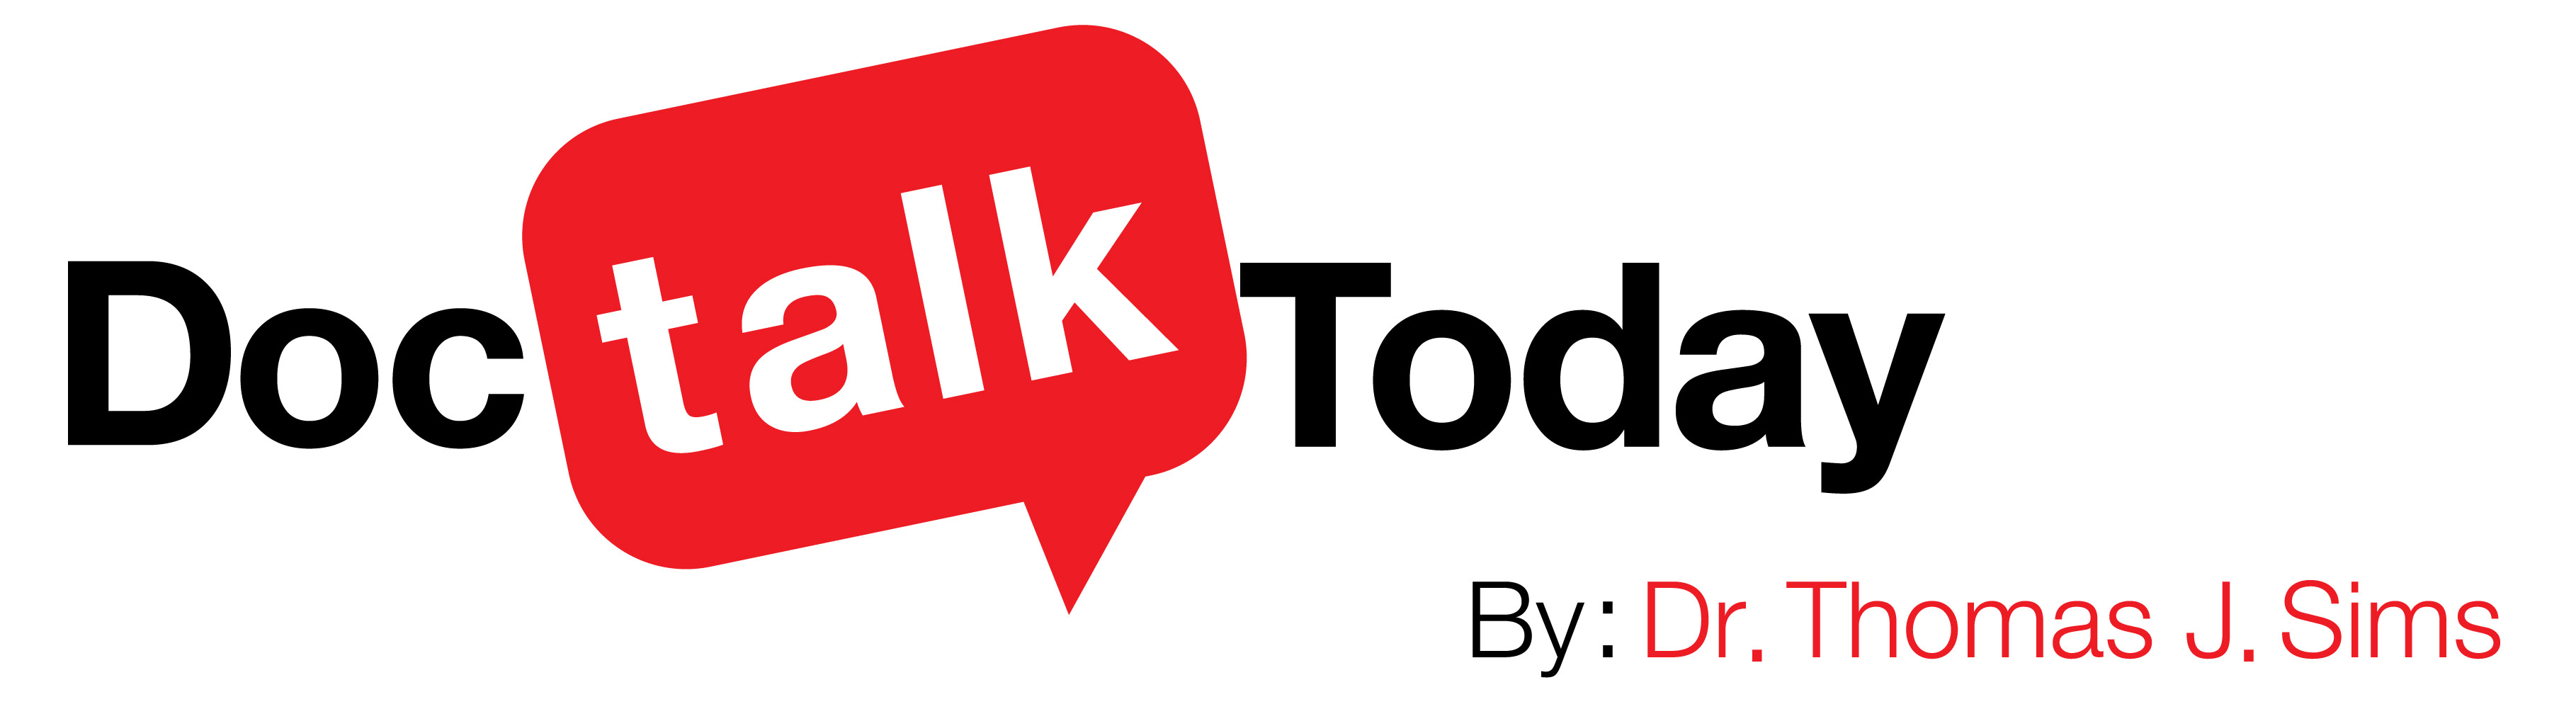 DocTalkToday